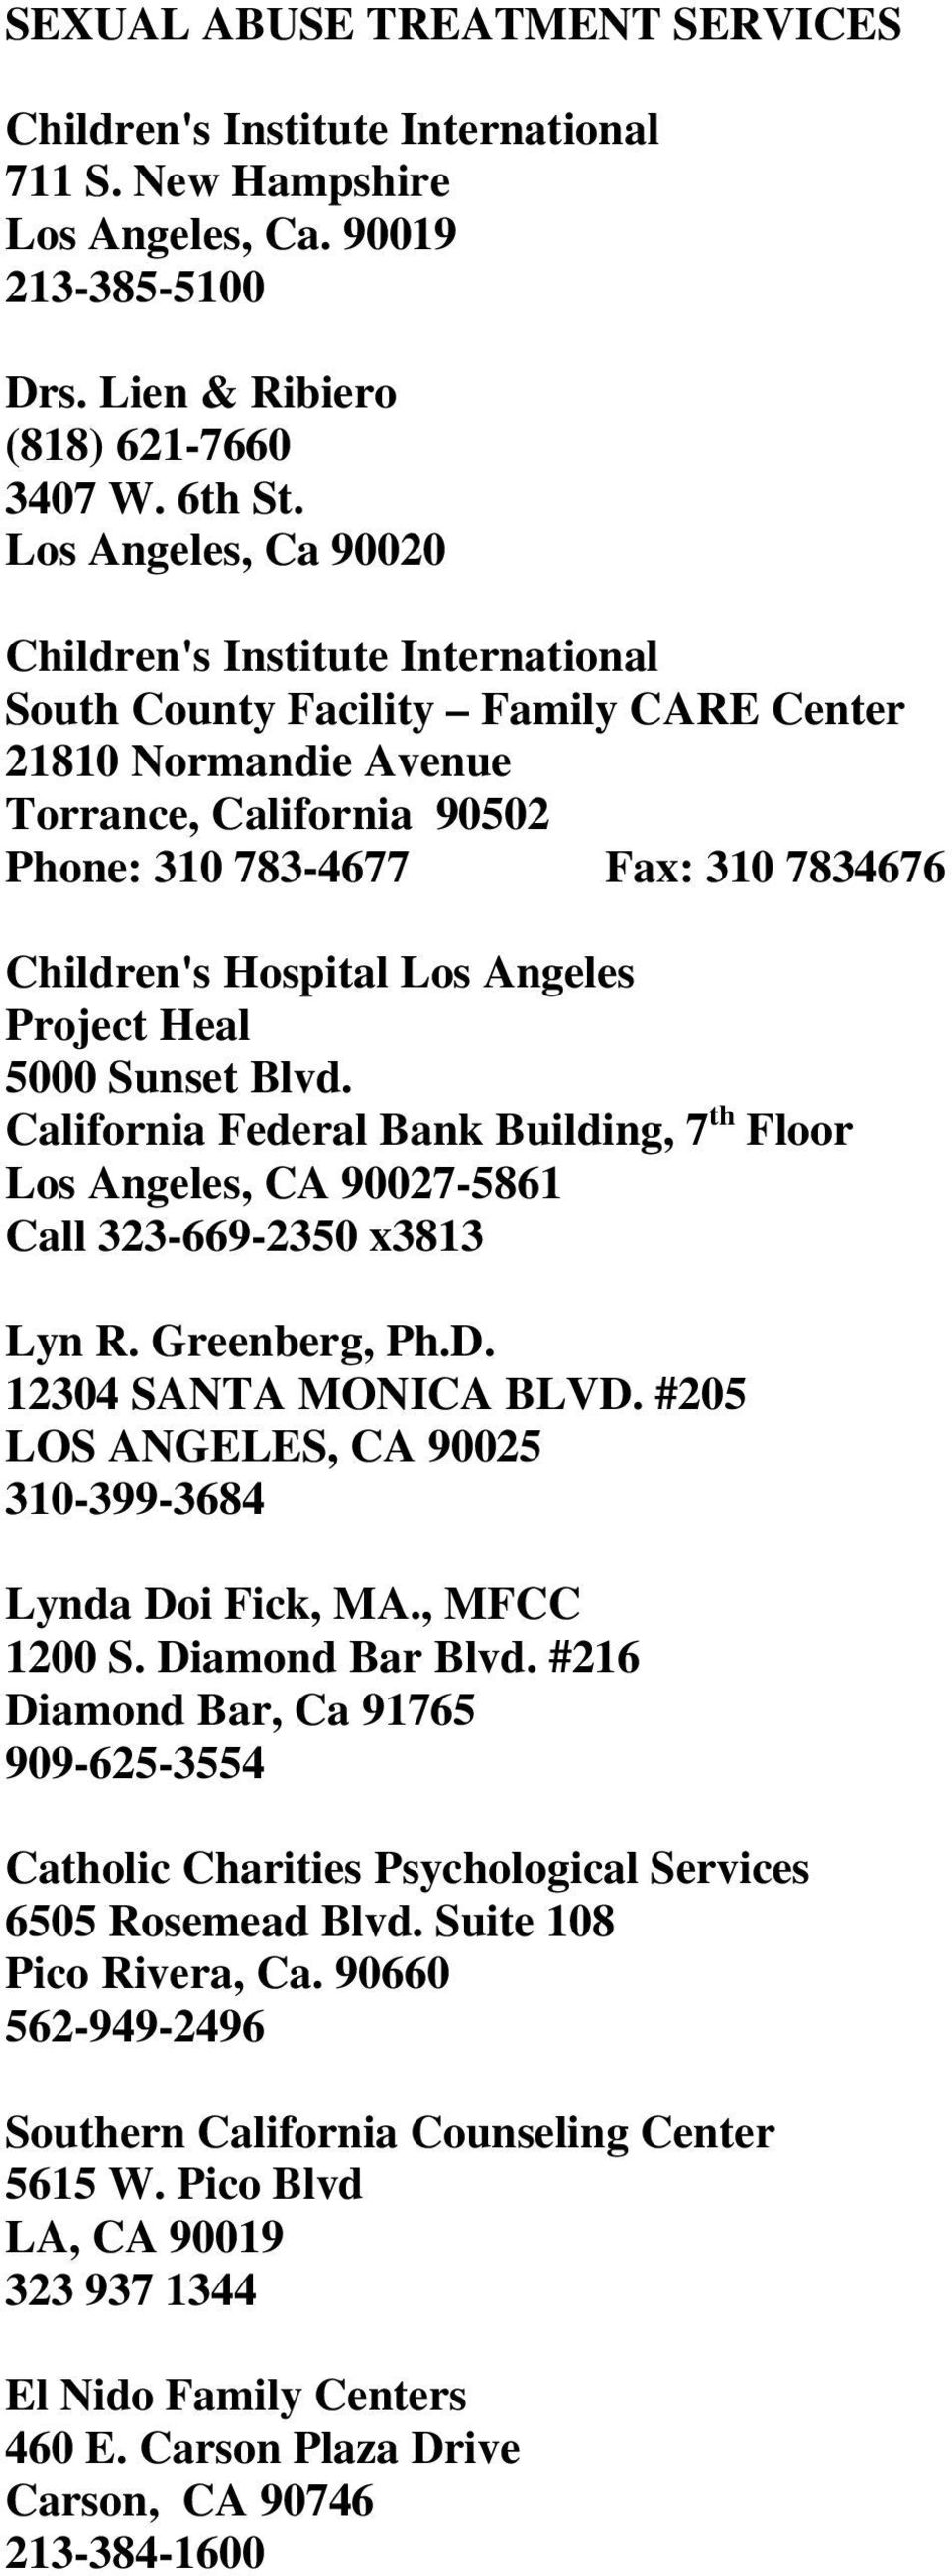 Hospital Los Angeles Project Heal 5000 Sunset Blvd. California Federal Bank Building, 7 th Floor Los Angeles, CA 90027-5861 Call 323-669-2350 x3813 Lyn R. Greenberg, Ph.D. 12304 SANTA MONICA BLVD.